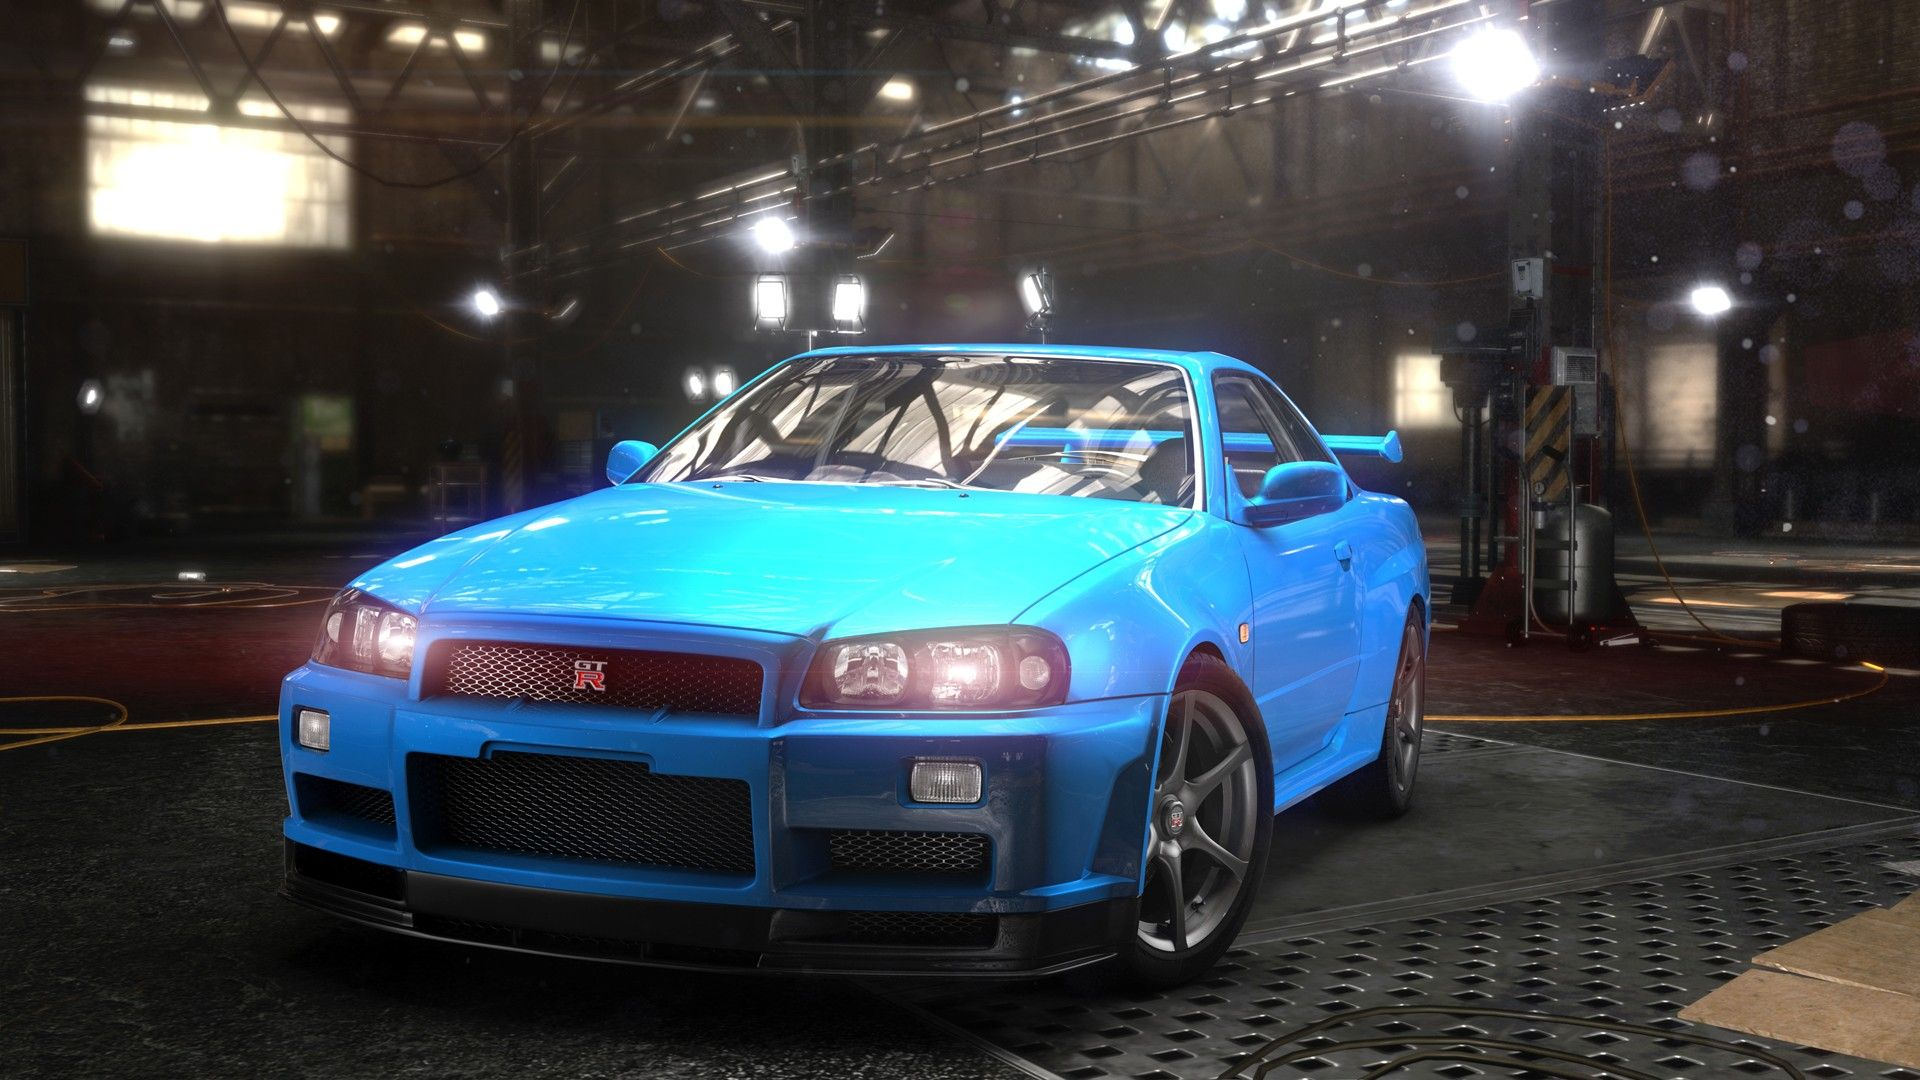 Nissan-R34_full_big.jpg